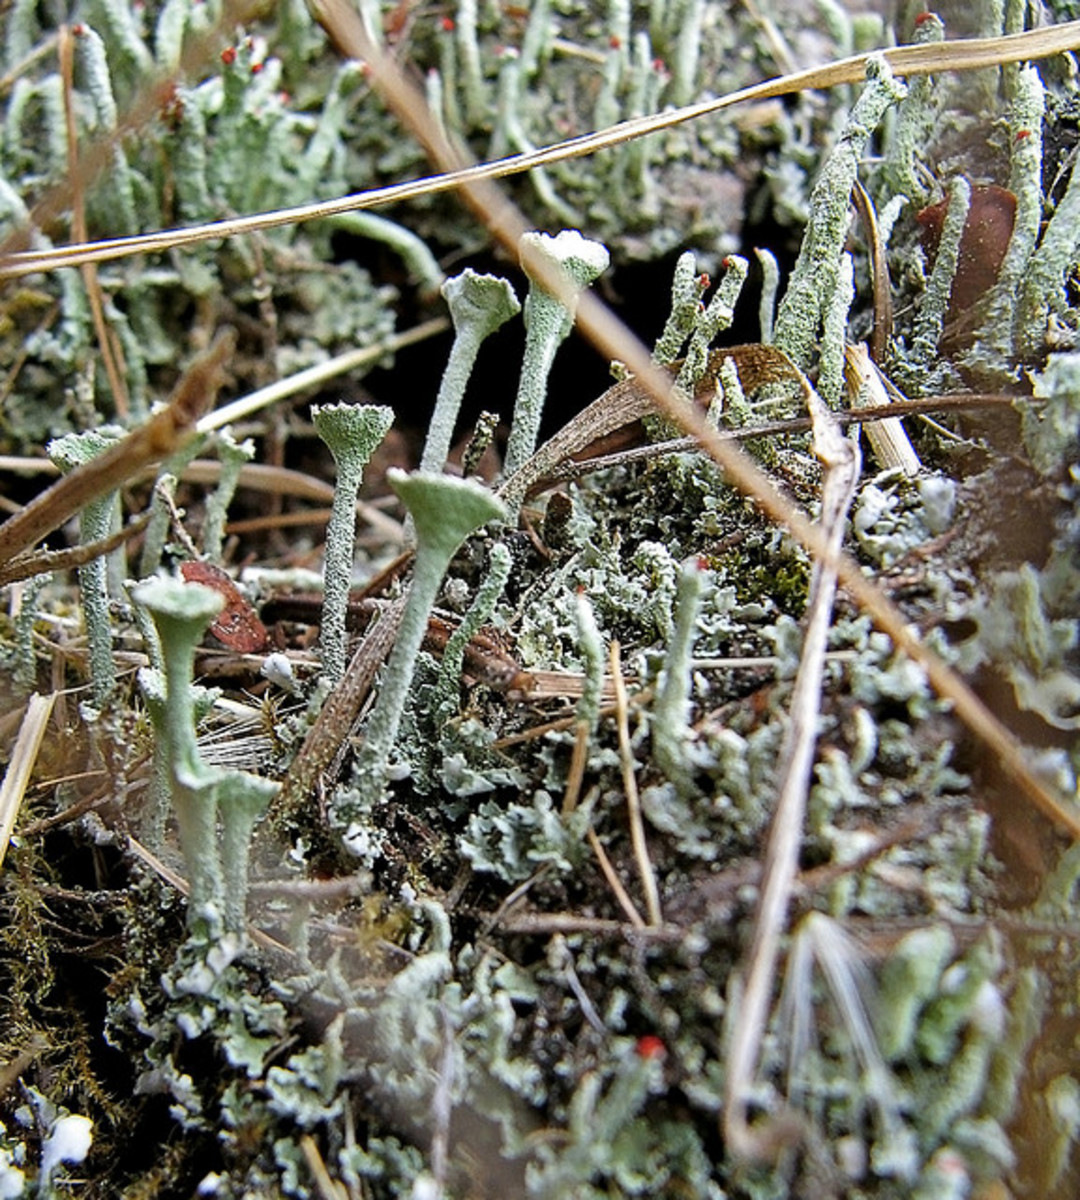 These lichen appear frosty although they are not. Notice all the different textures including the hairy stems.